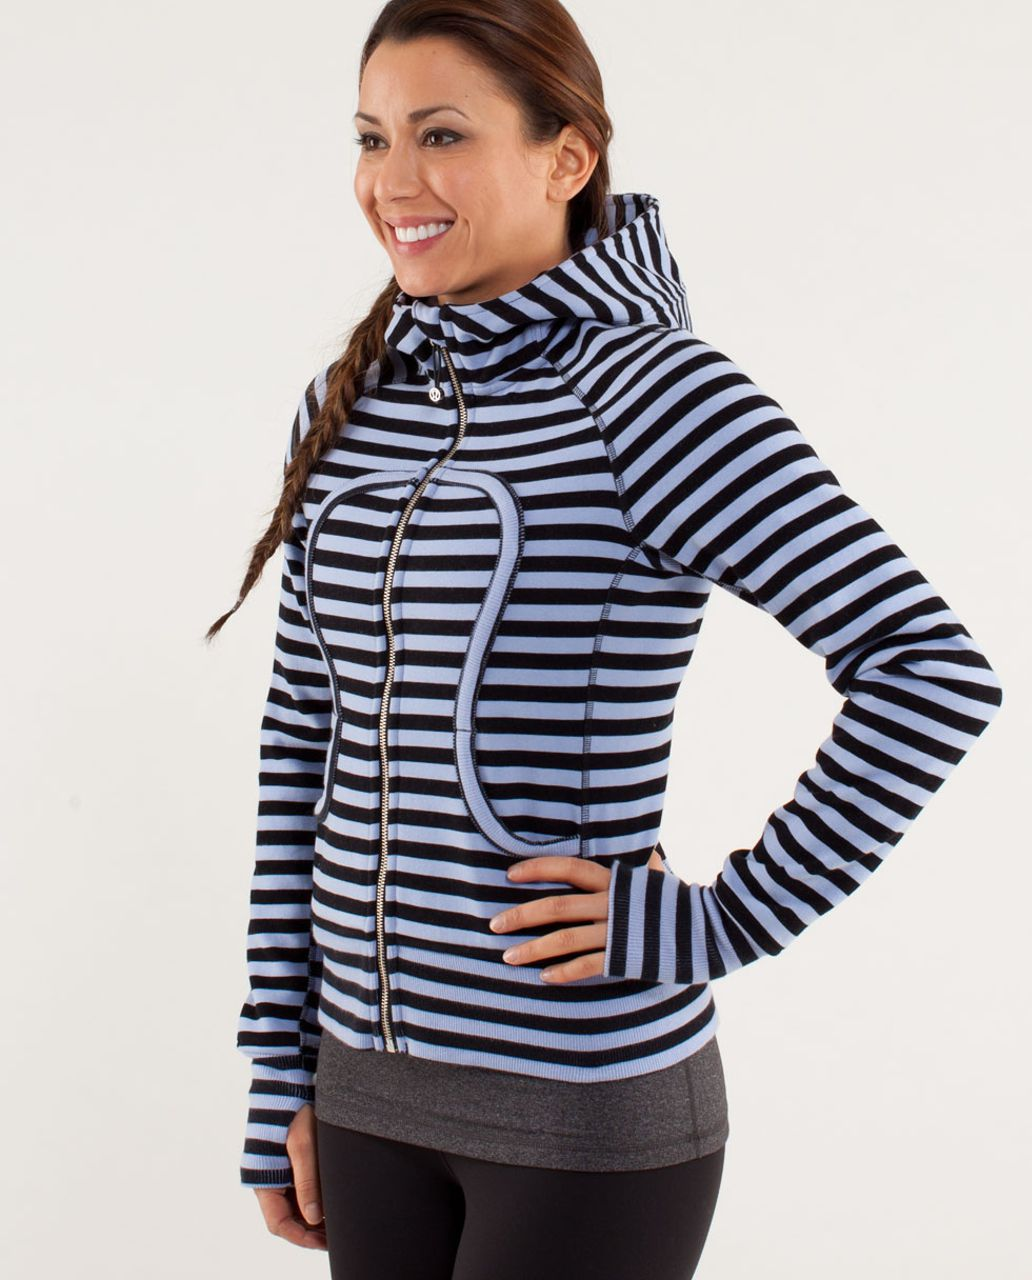 Lululemon Scuba Hoodie *Stretch - Sea Stripe Printed Polar Haze Black